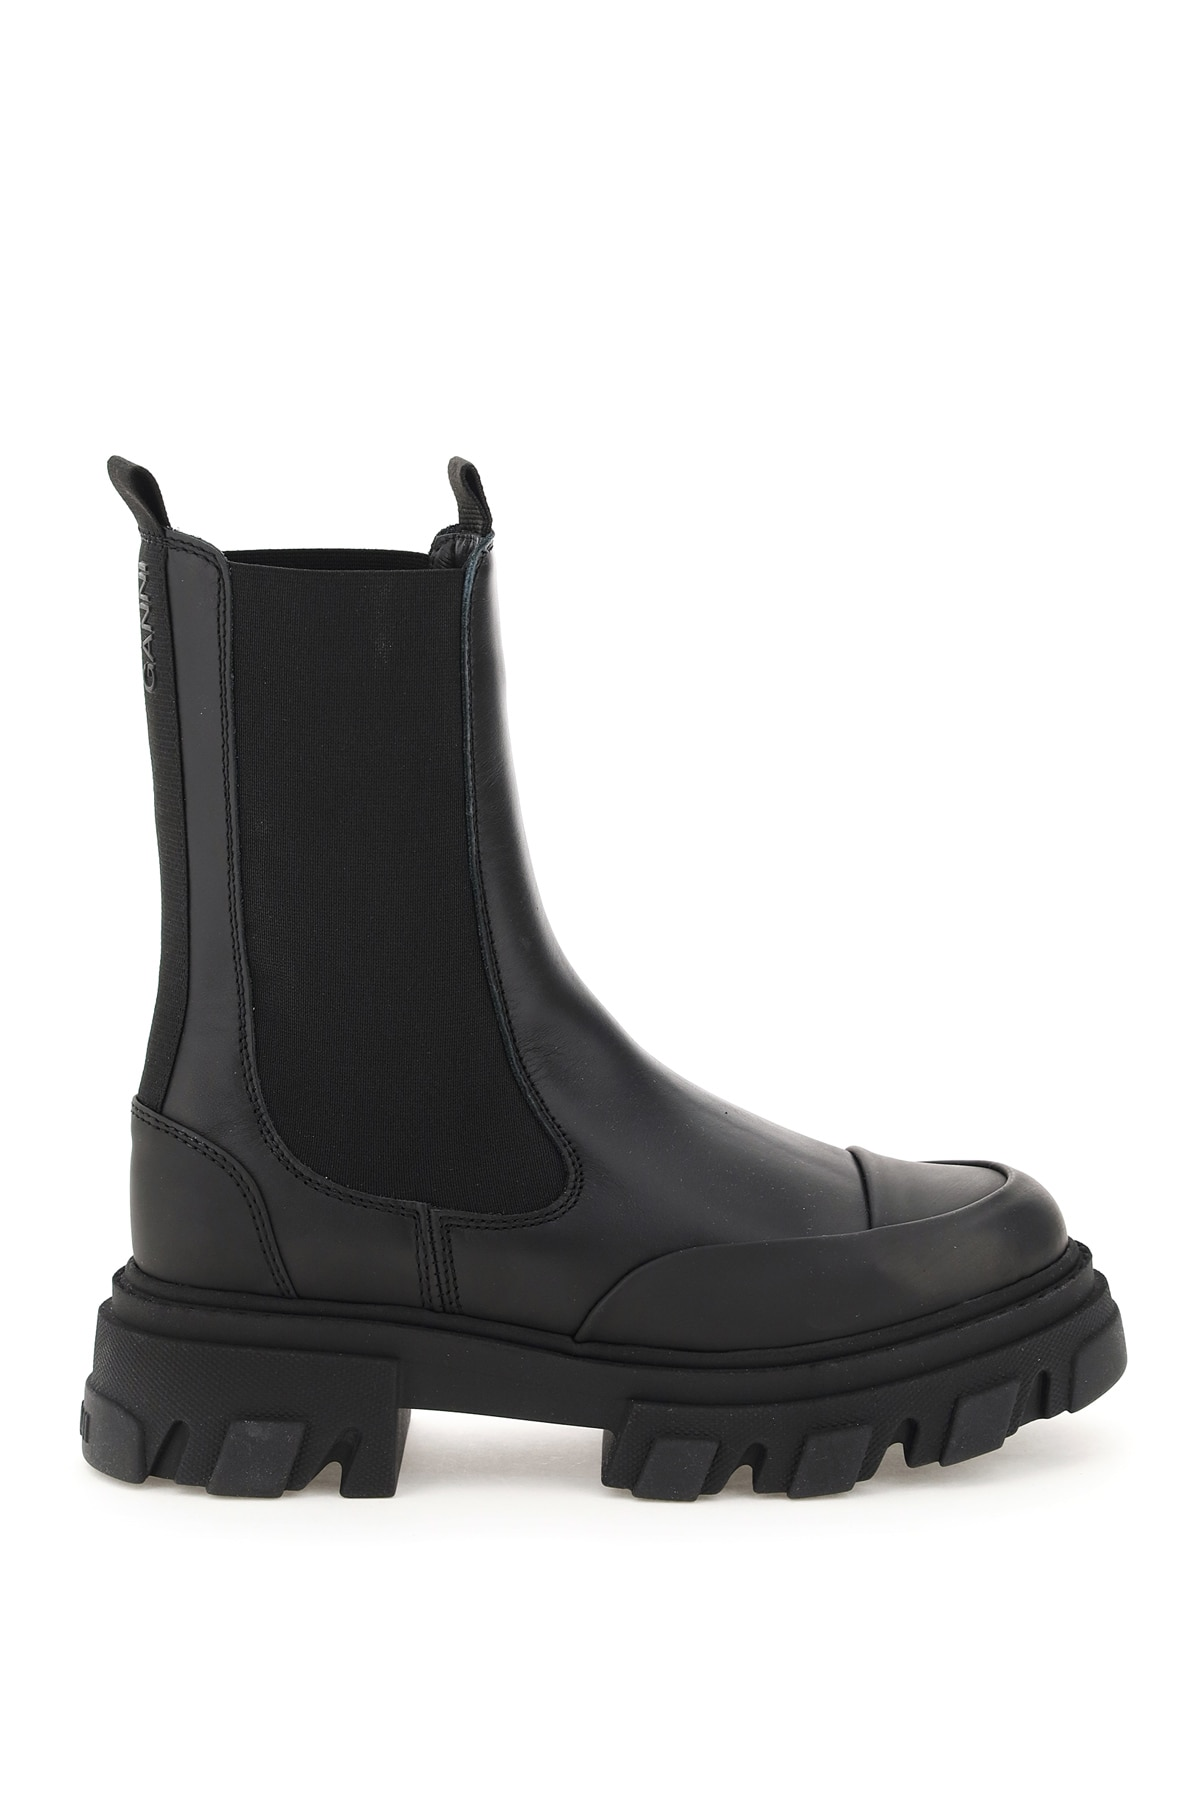 Ganni Leather Mid Chelsea Boots 40 Black Leather